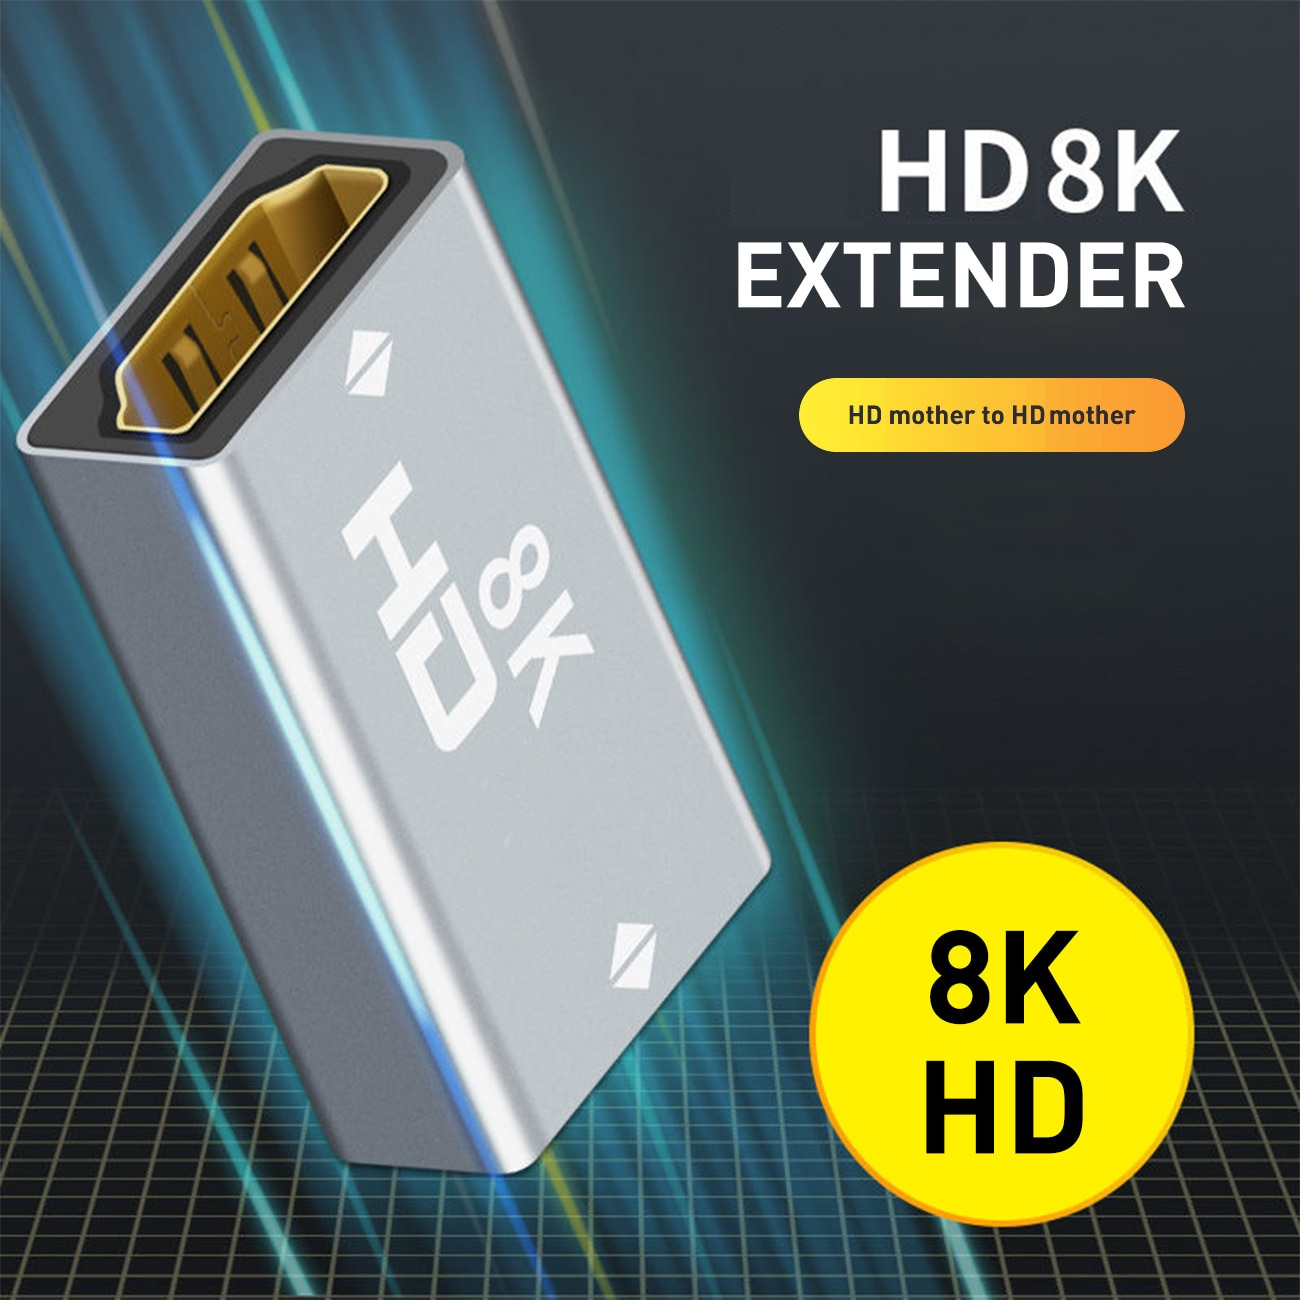 AliExpress - HD HDMI-Compatible Converter Extender Cord Extension Cable Adapter 8K@60Hz HDMI-Compatible Female to Female for PC TV Projector